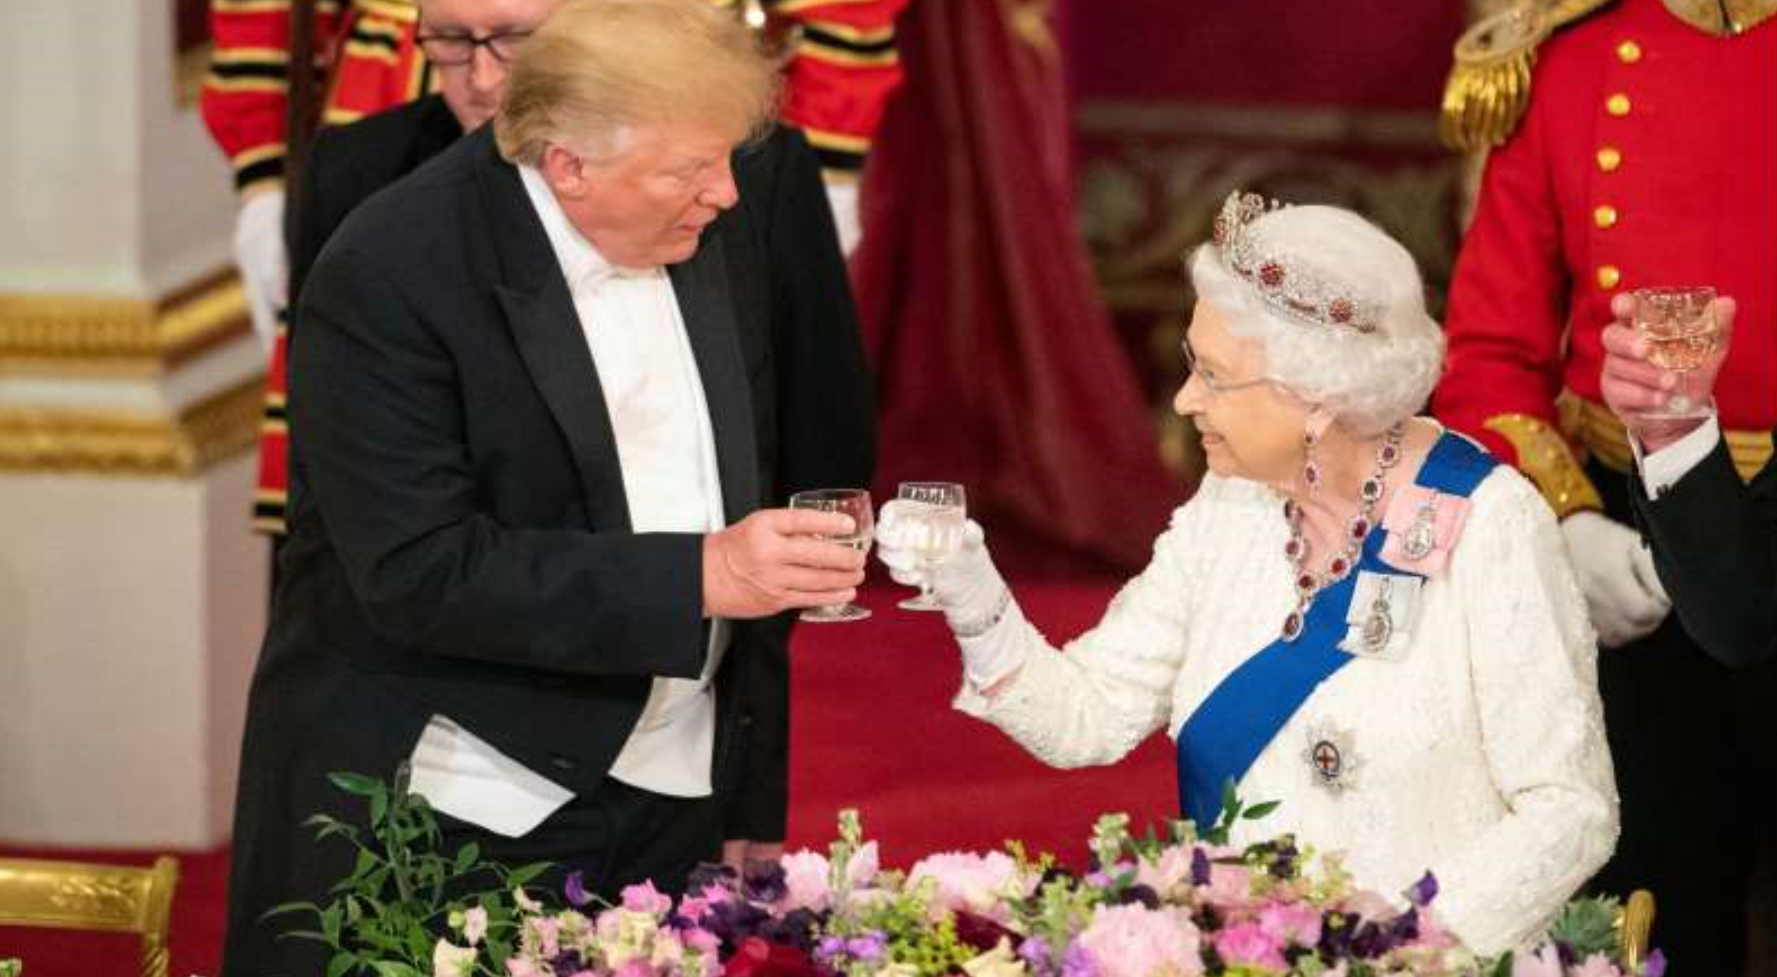 President Trump and Melania Receive Royal Welcome At Buckingham Palace